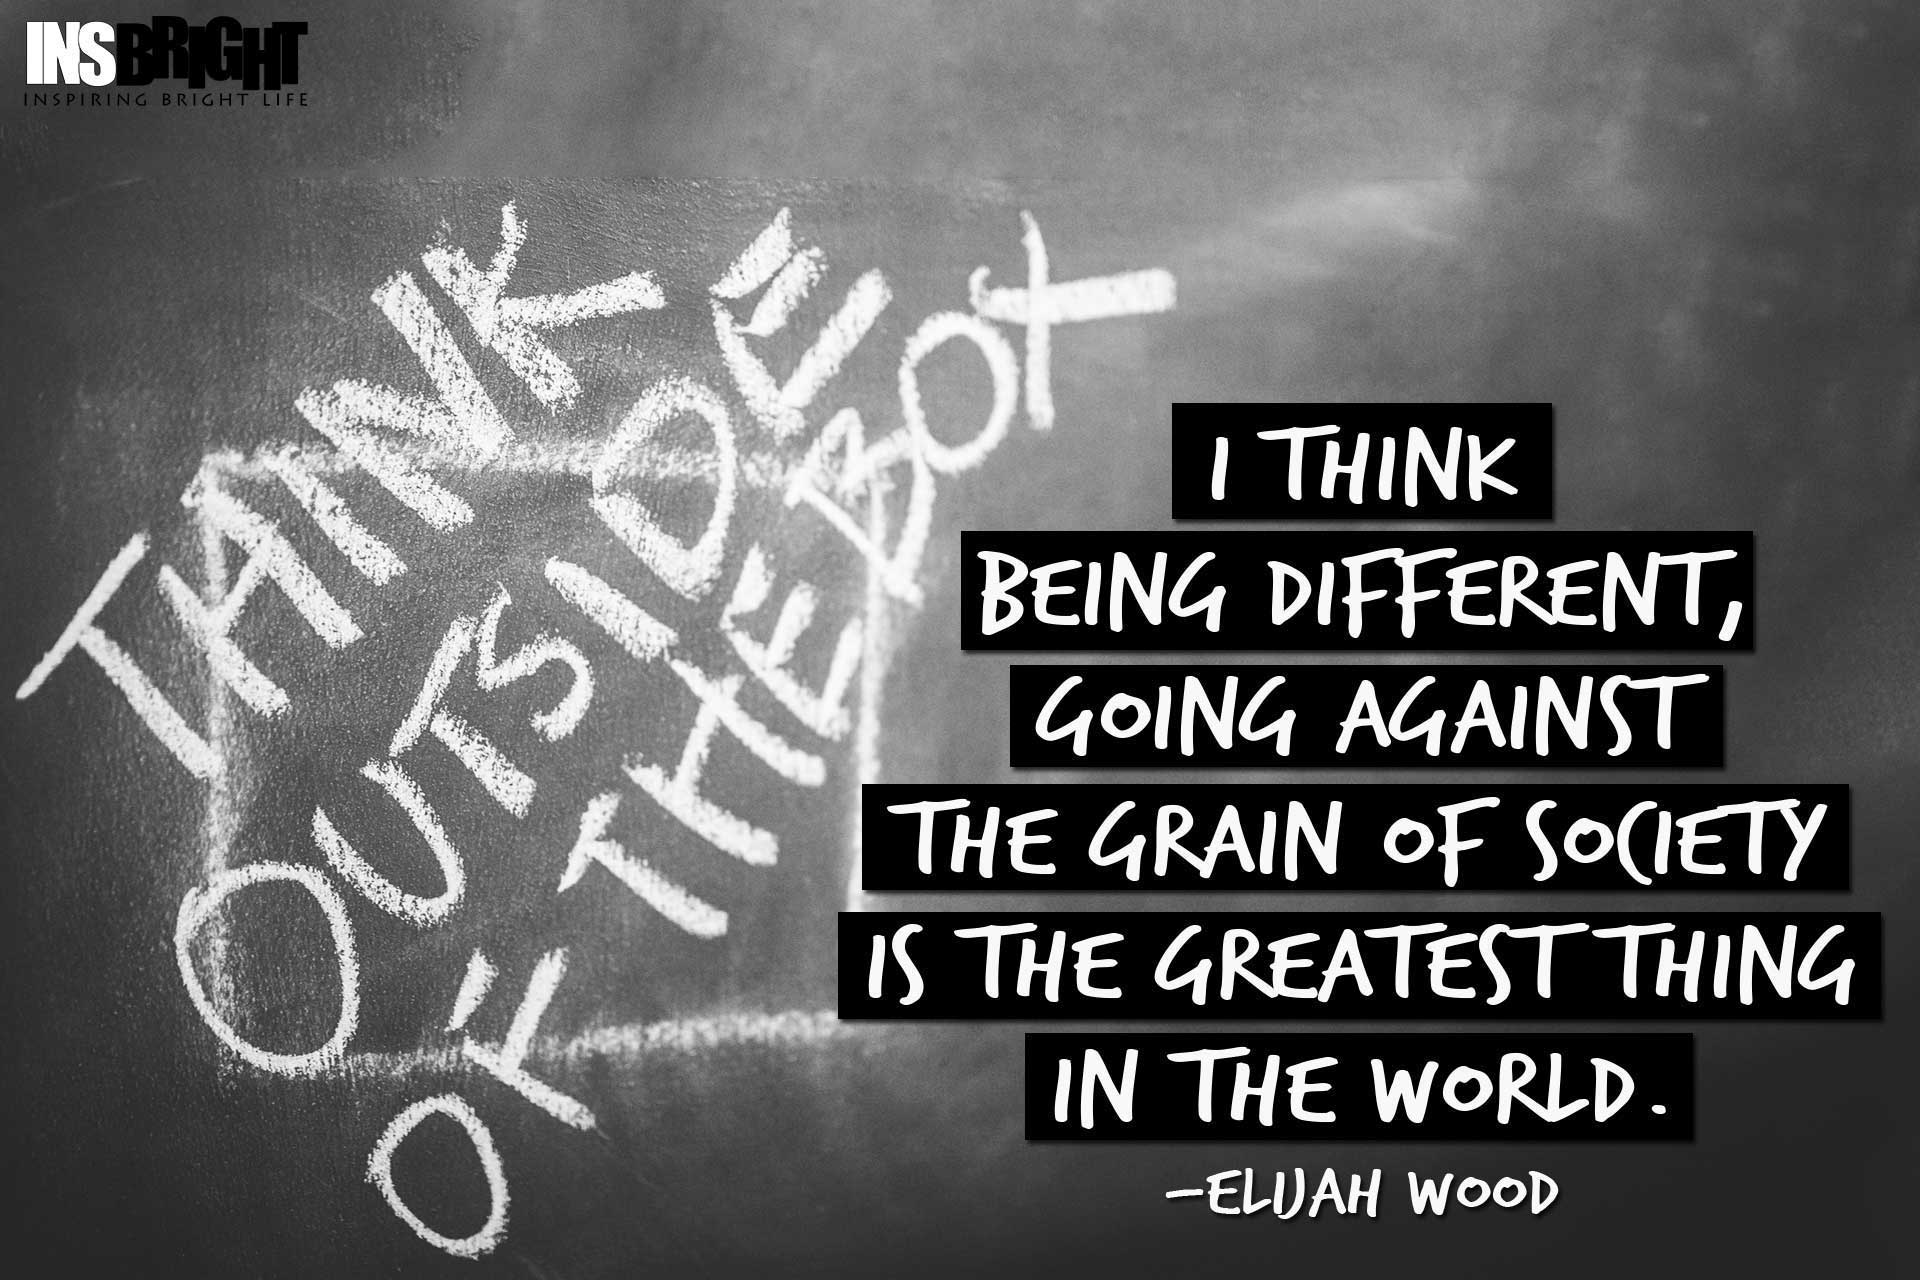 Society Quotes 30 Being Different Quotes With Images  Famous Be Unique Quotes